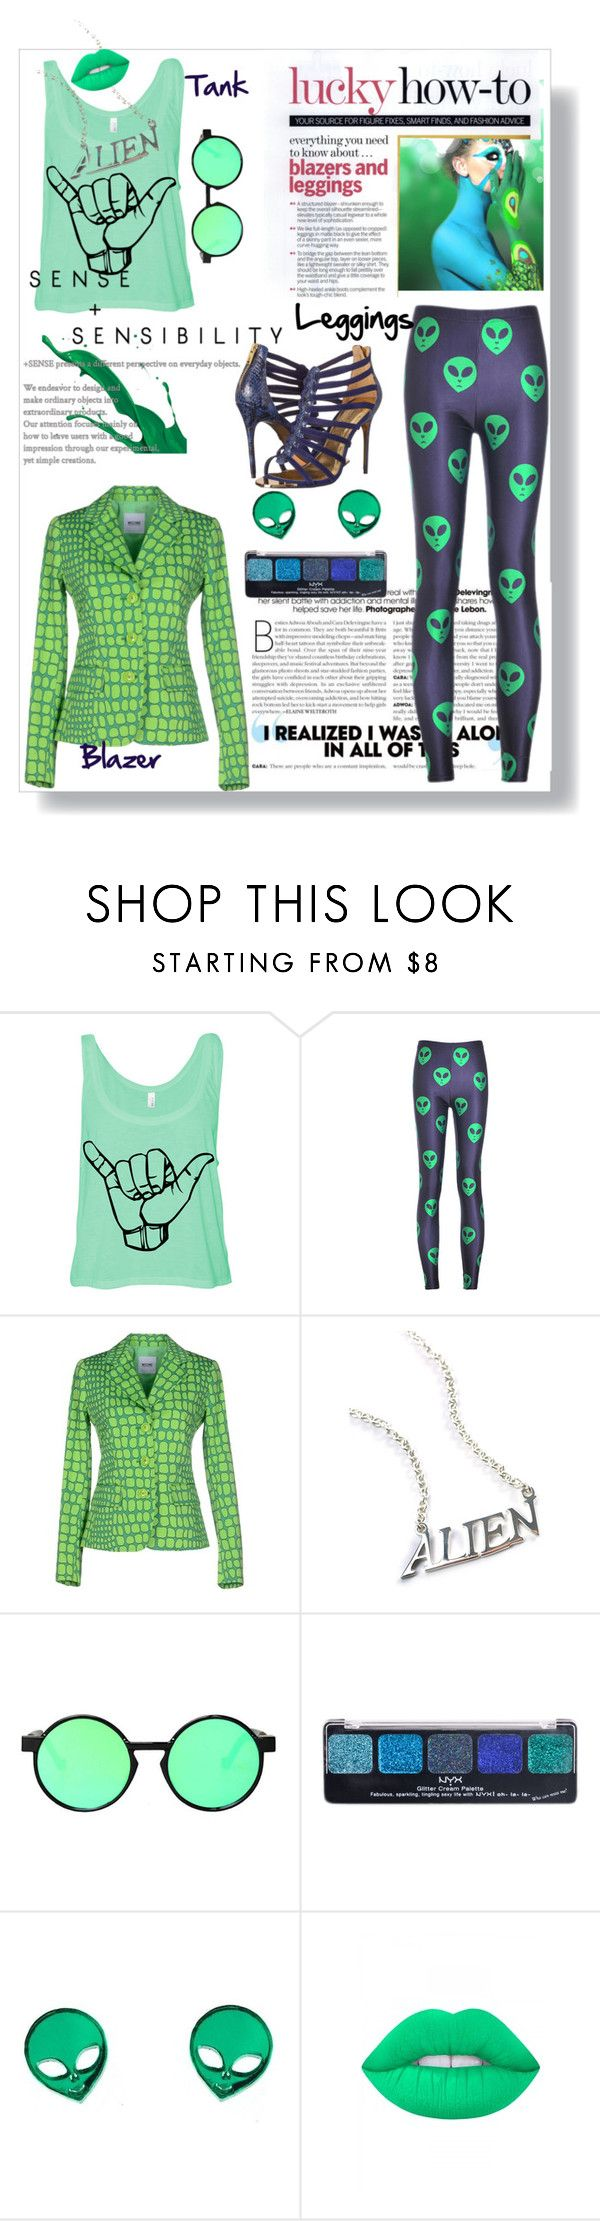 """Wardrobe Staples: Leggings!"" by deeppurplesea ❤ liked on Polyvore featuring Chicnova Fashion, Moschino Cheap & Chic, Disturbia, NYX, Lime Crime, Ted Baker, Leggings and WardrobeStaples"